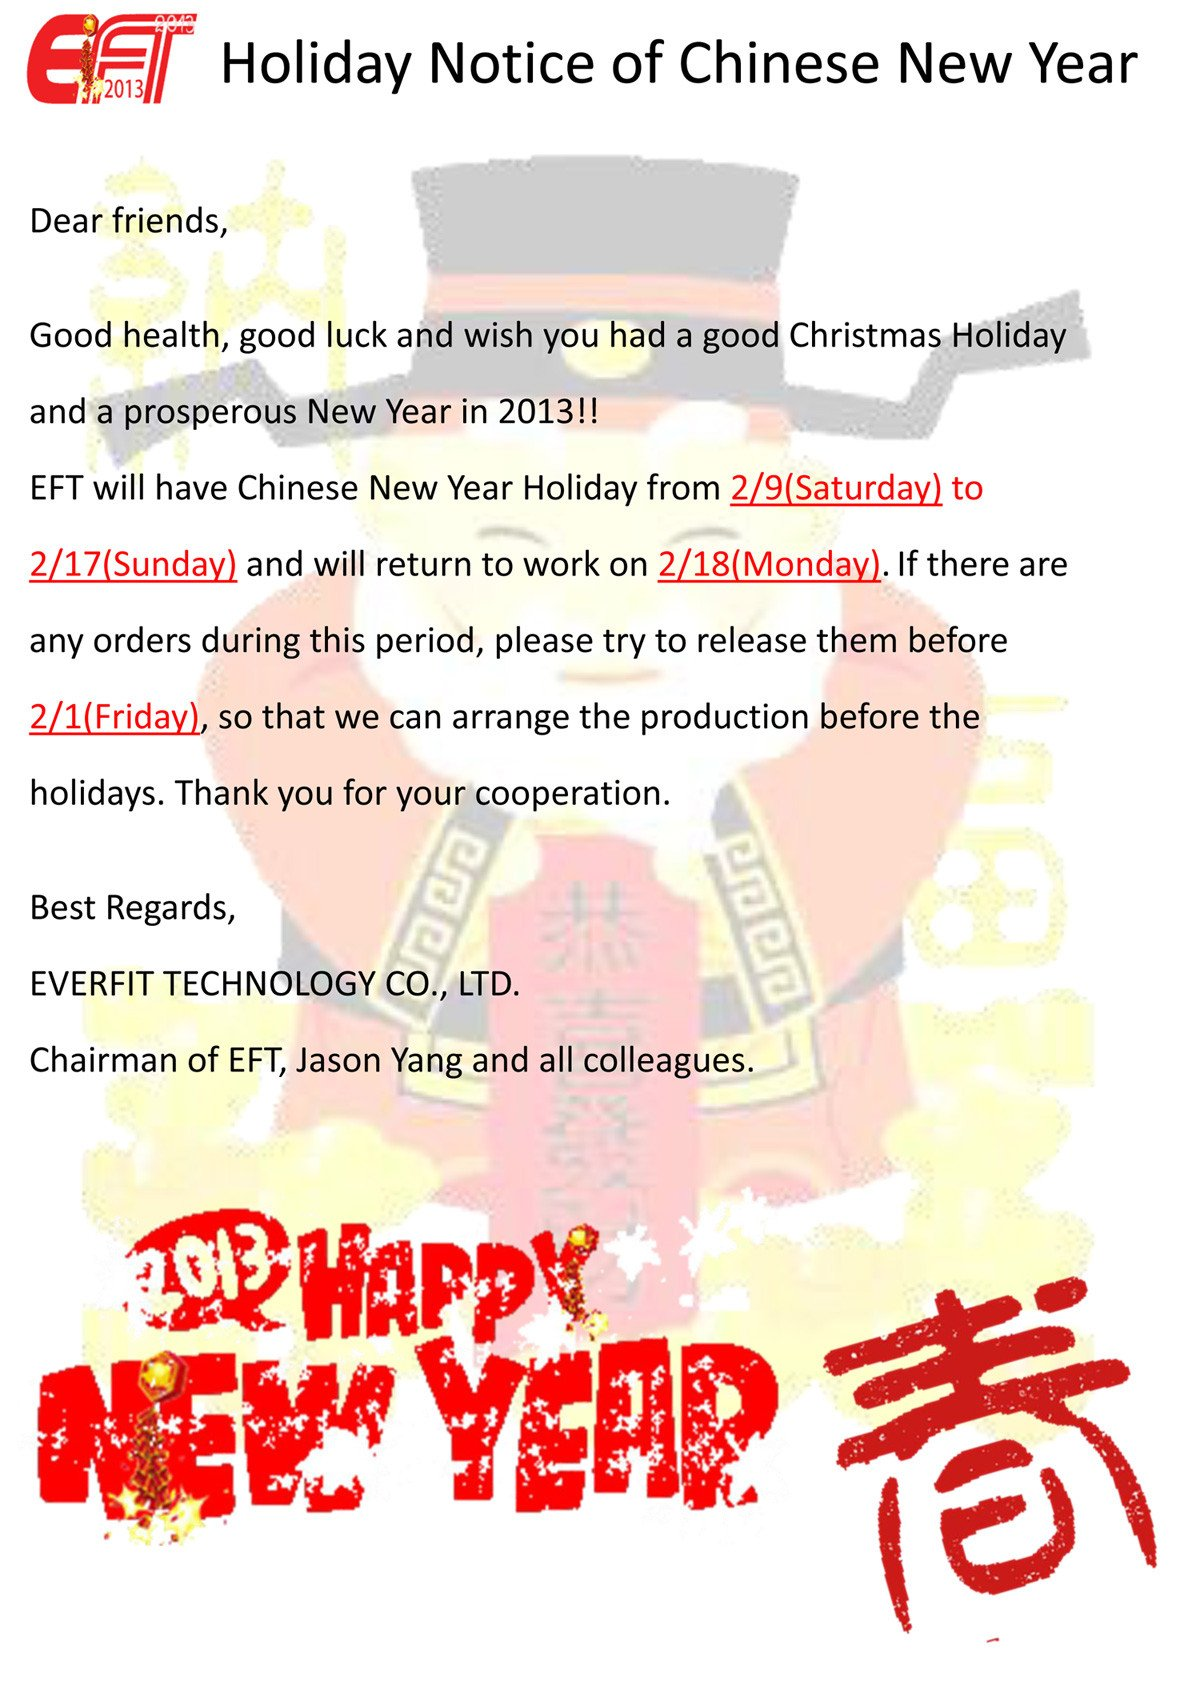 Holiday Notice of Chinese New Year